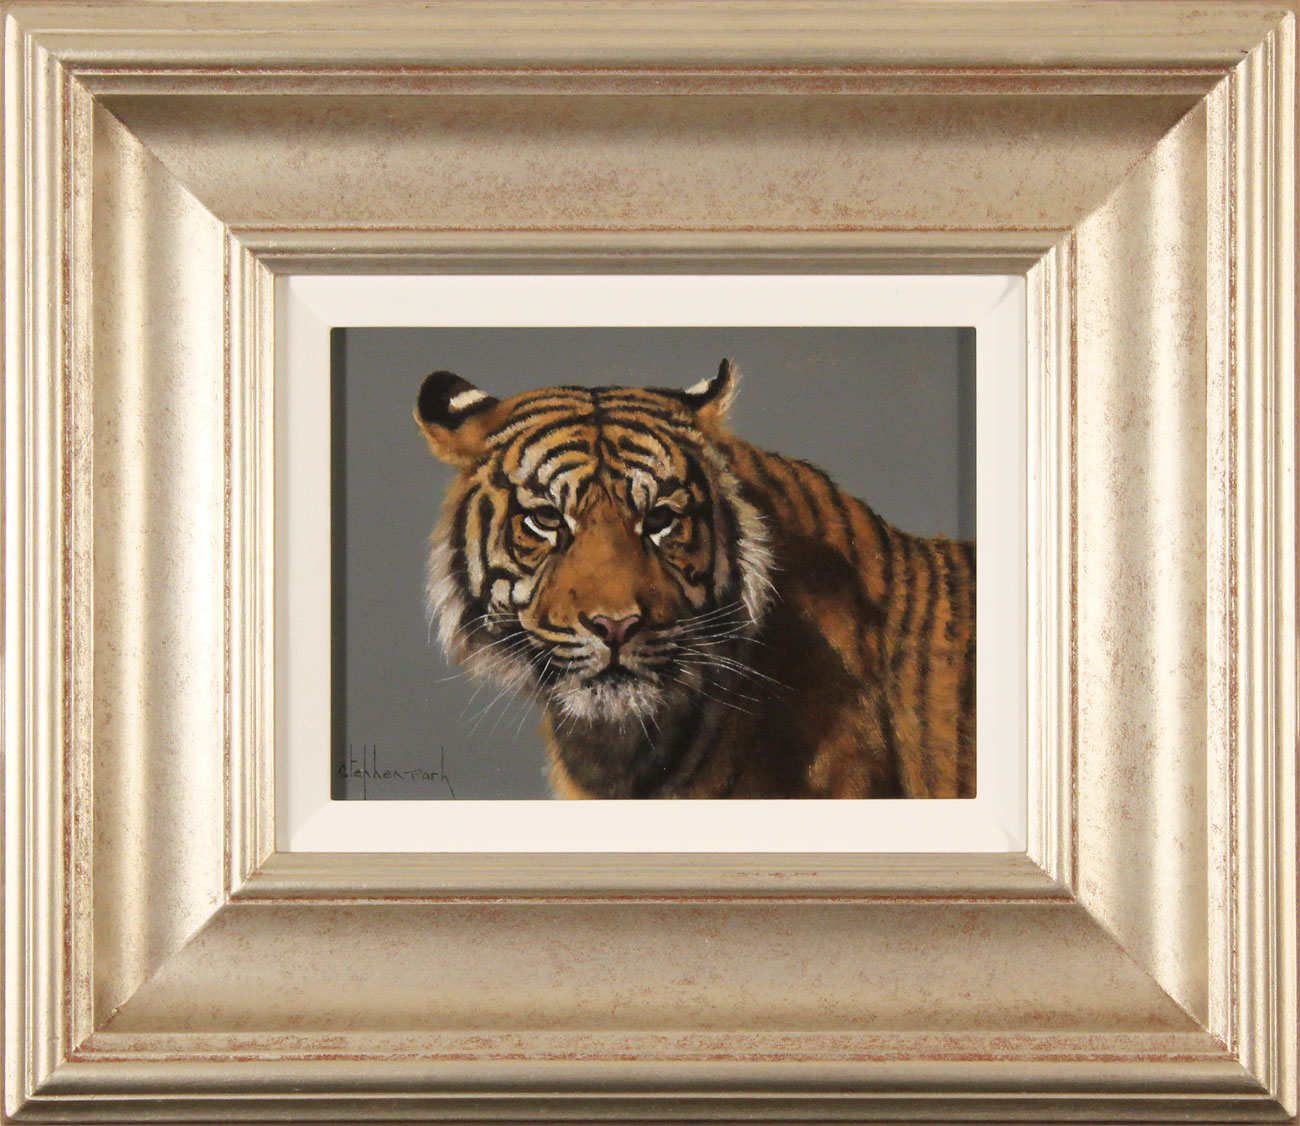 Stephen Park, Original oil painting on panel, Tiger, click to enlarge